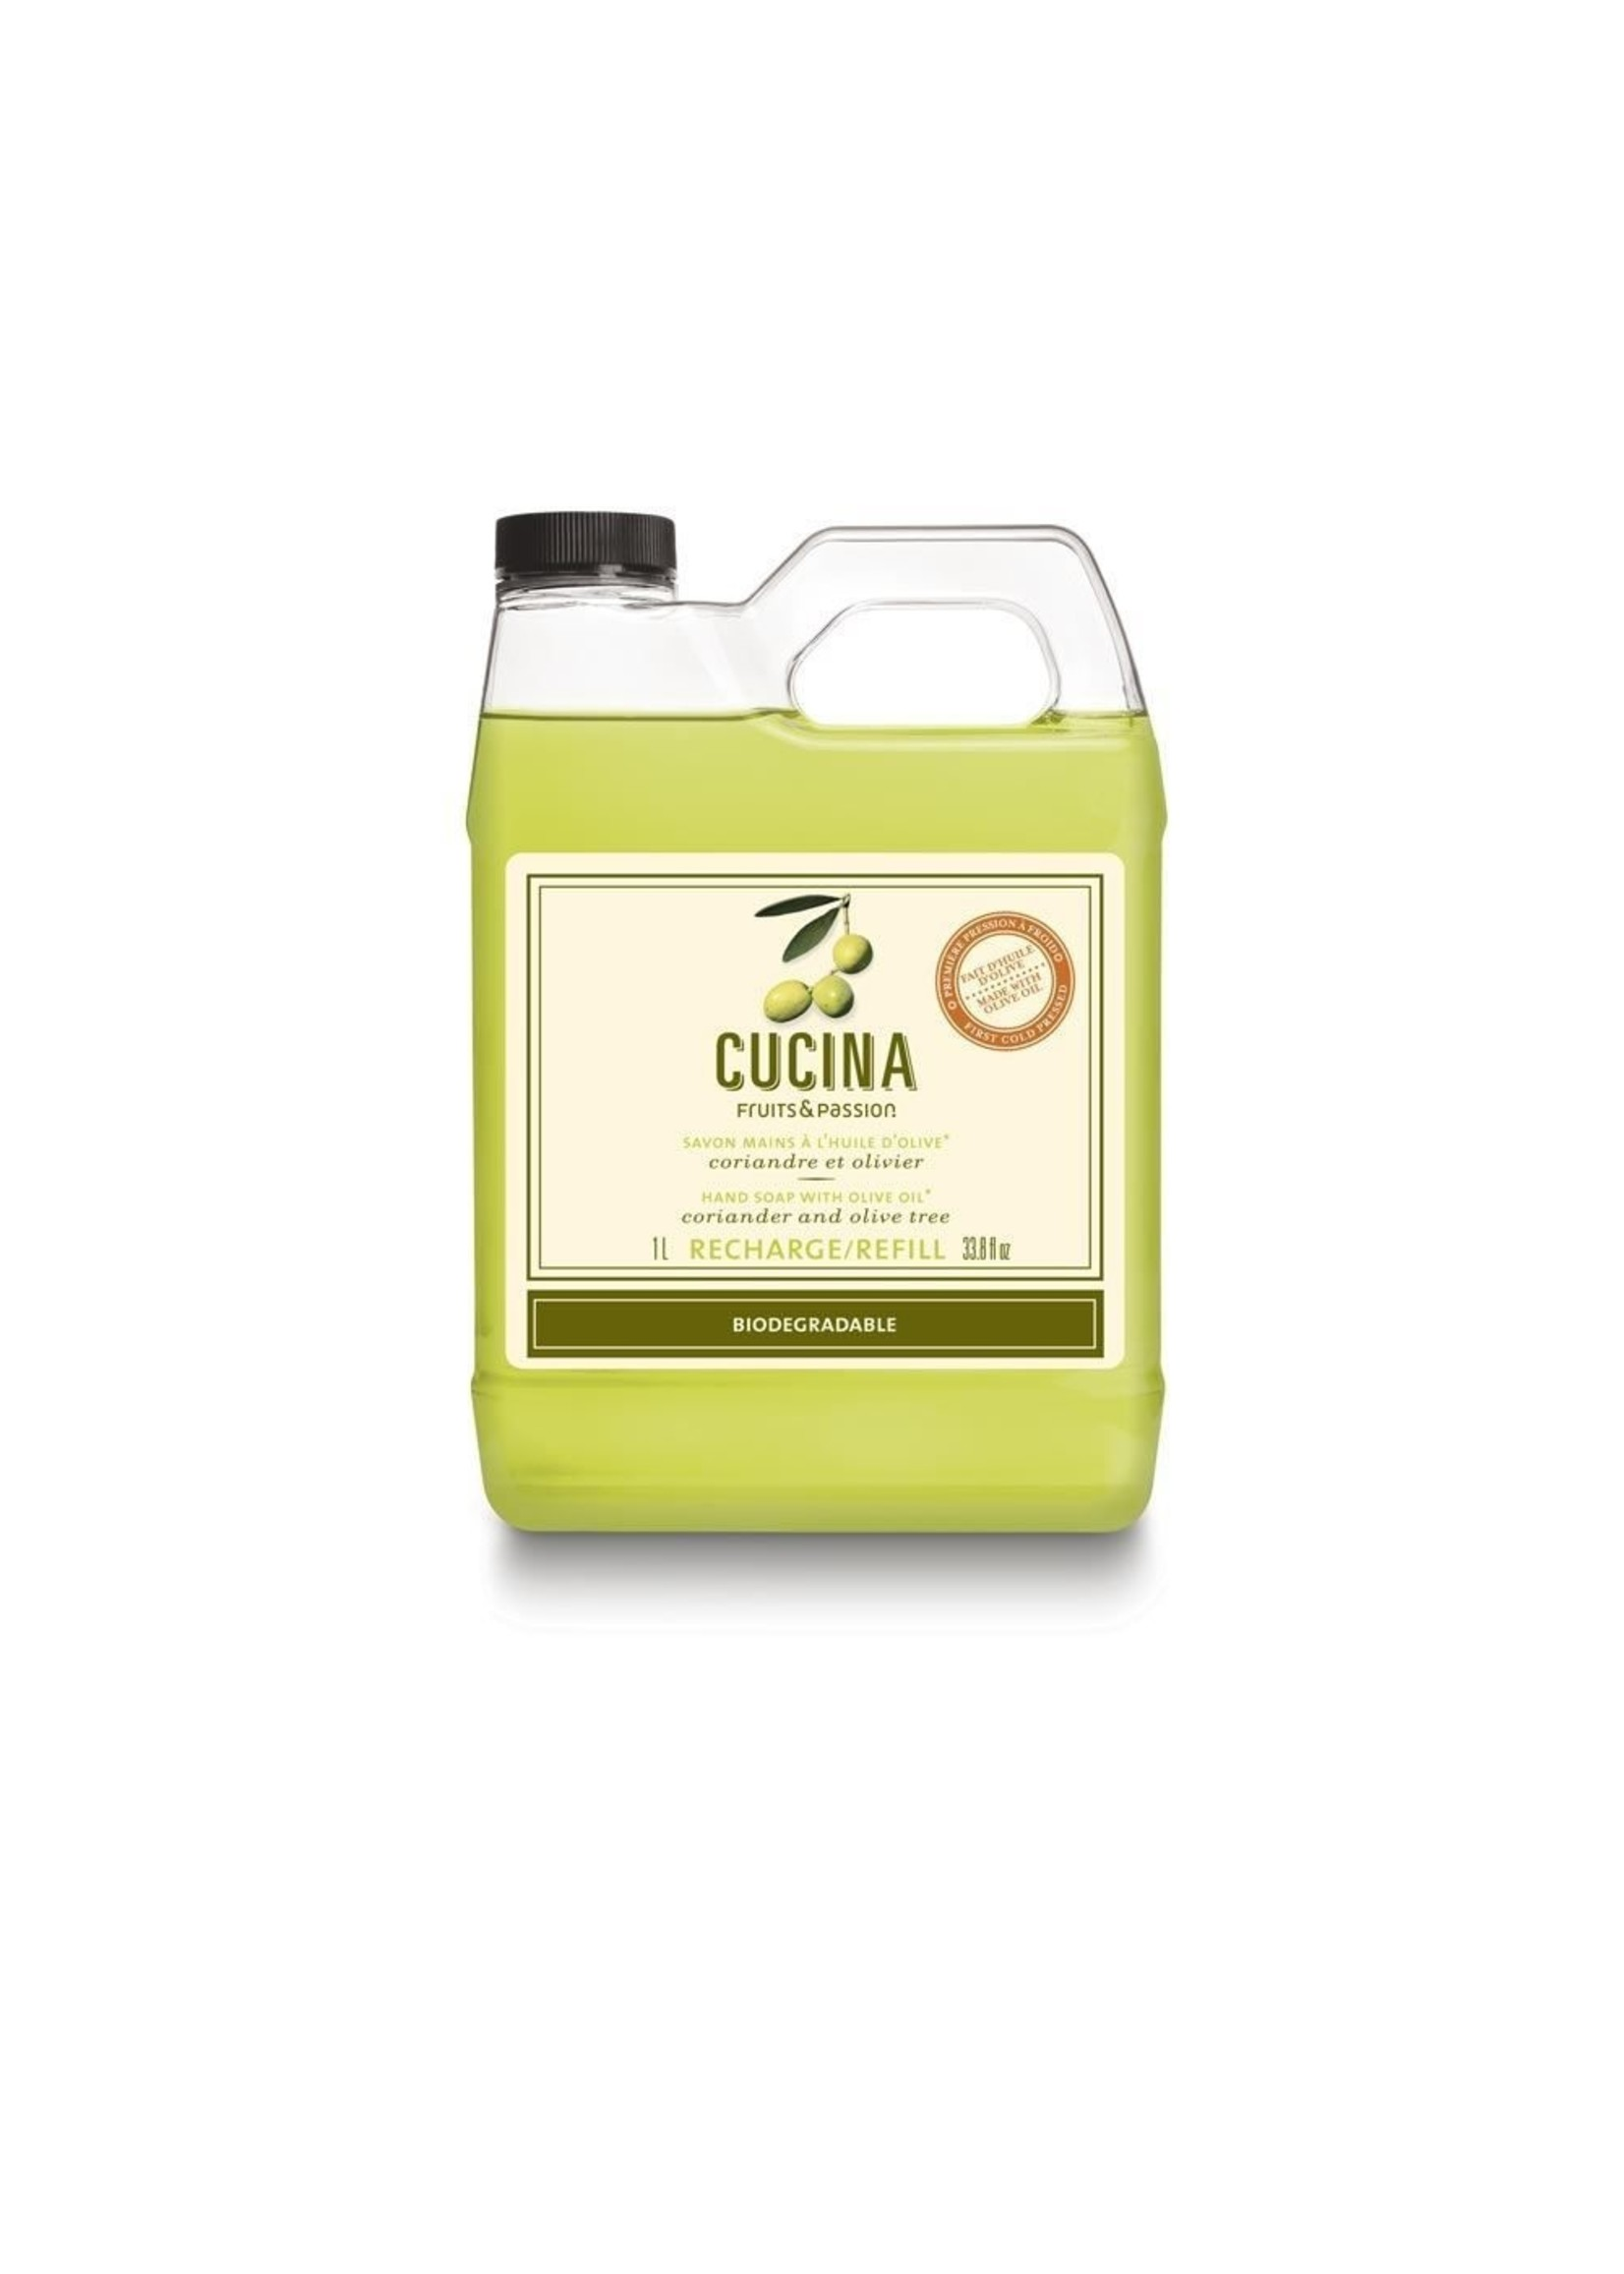 Cucina Hand Soap with Olive Oil Refill - Coriander and Olive Tree